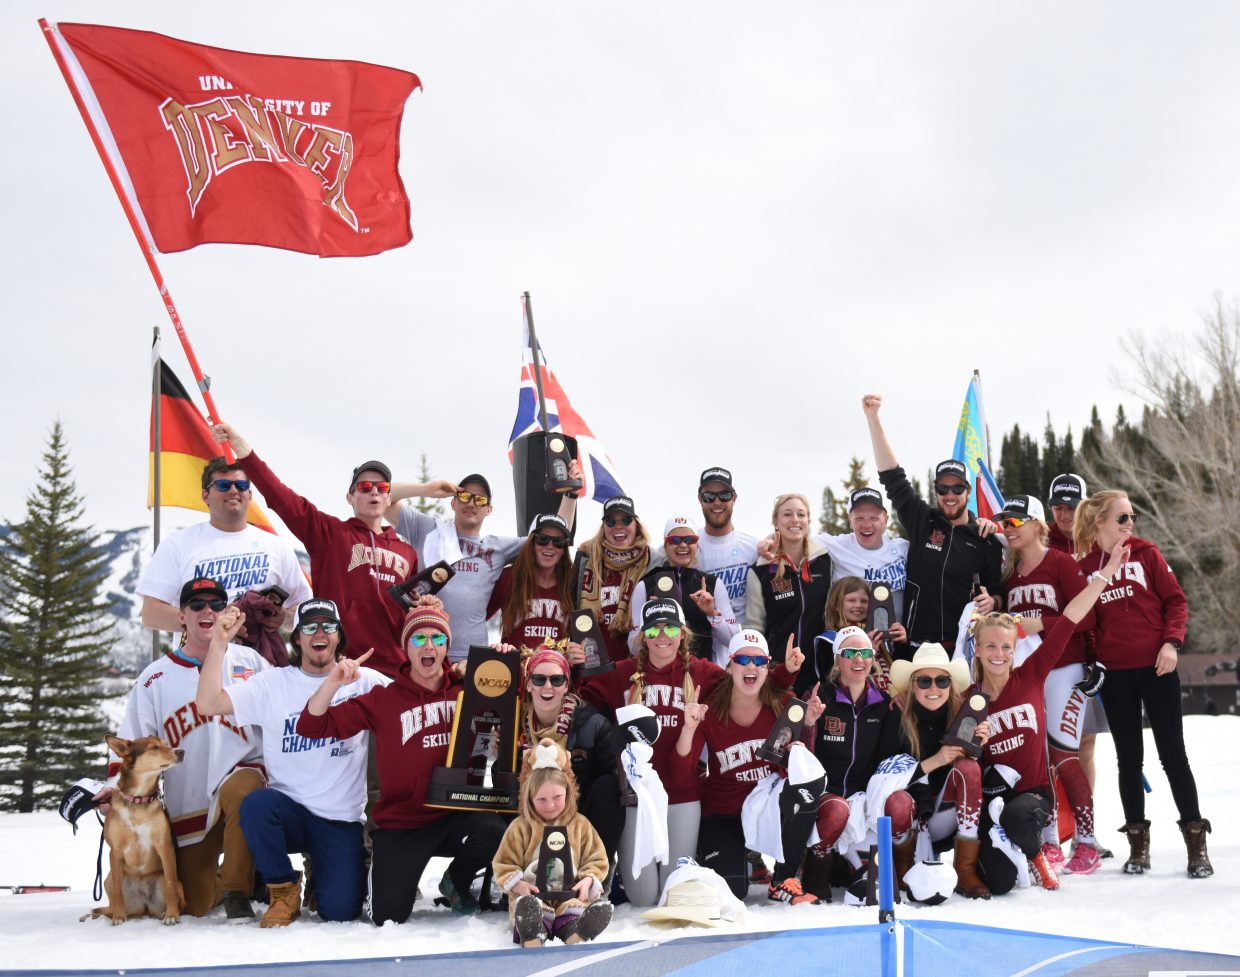 The University of Denver ski team won the NCAA Skiing Championship on Saturday, a record 23rd title for the program.